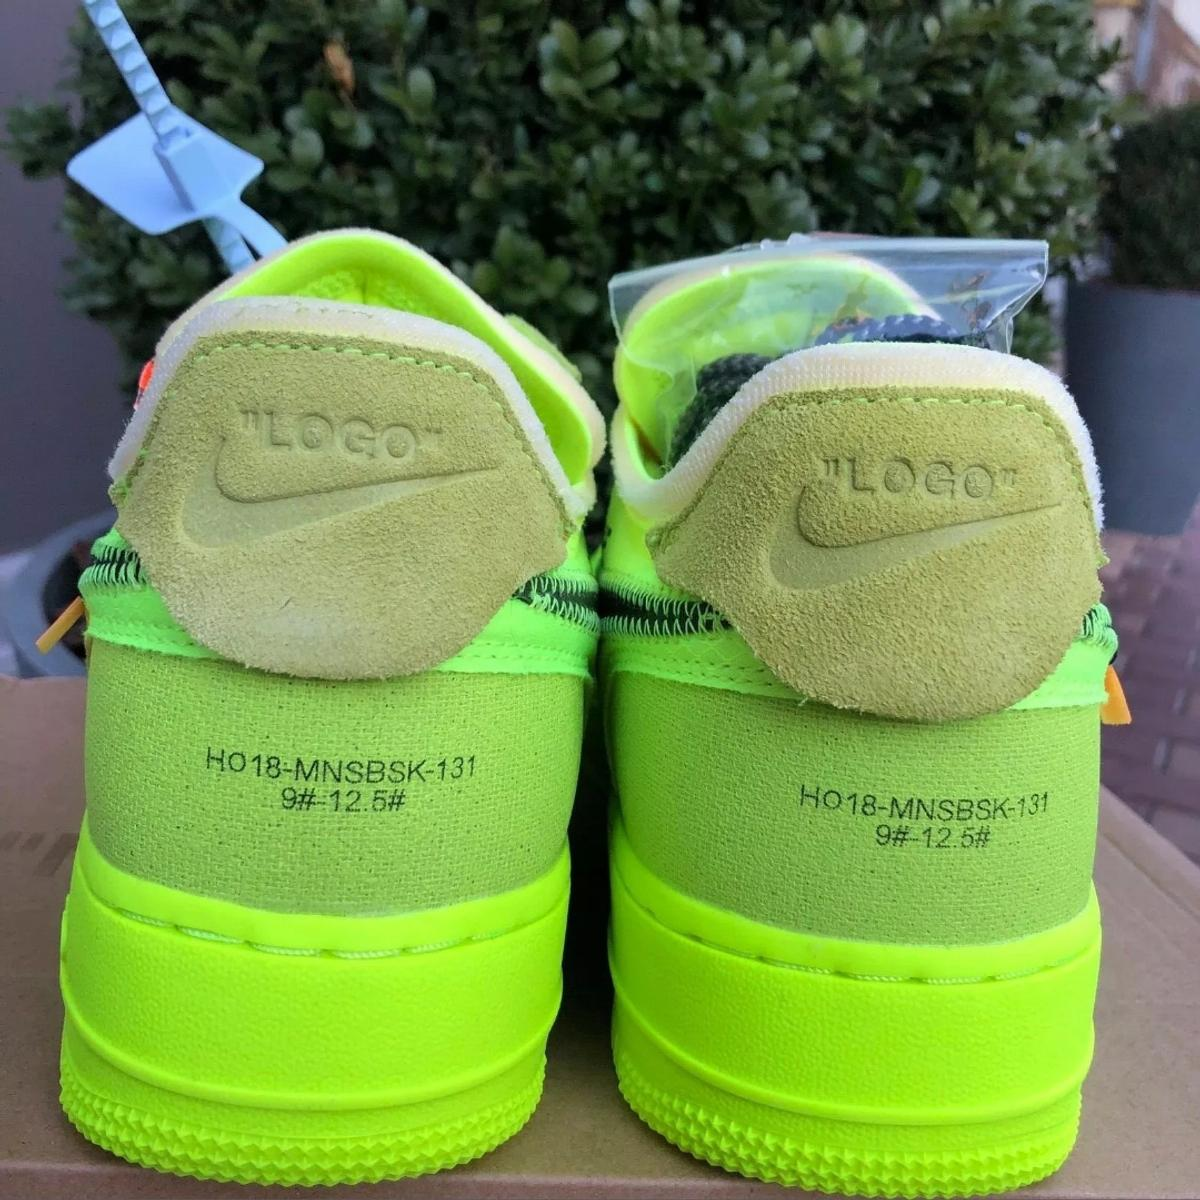 OFF WHITE X Nike Air Force 1 Volt in HA4 London for £350.00